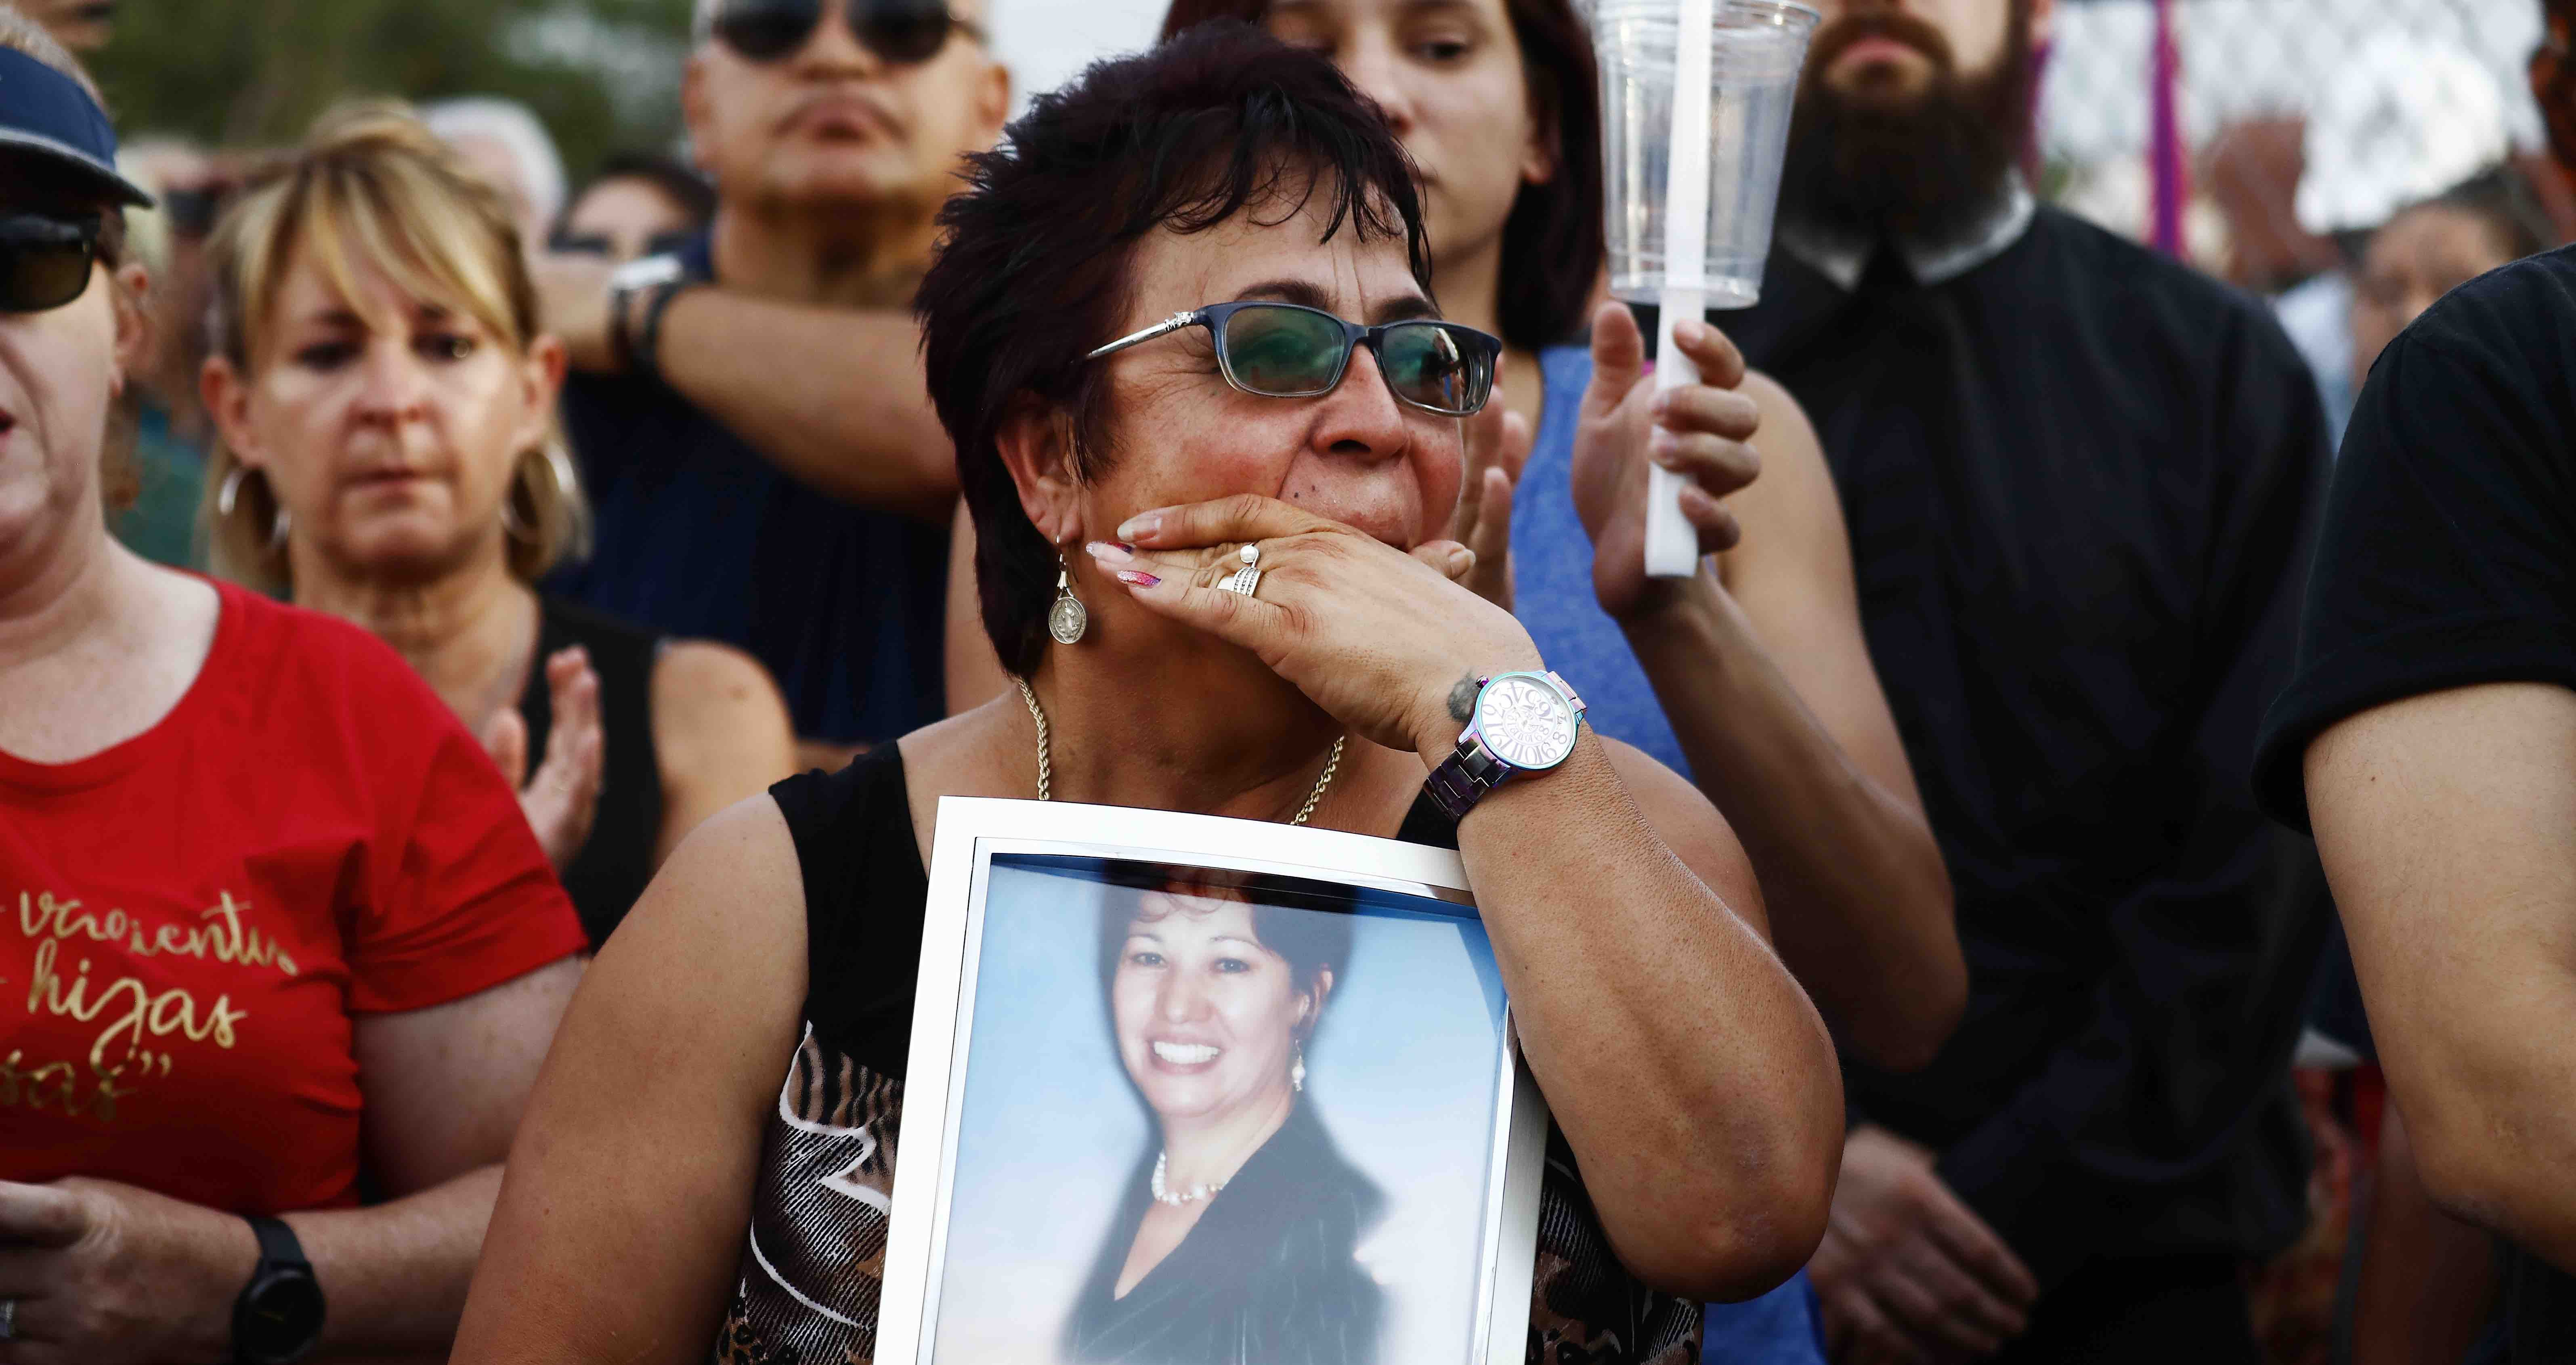 Remembering the Victims of the Tragic El Paso Shooting